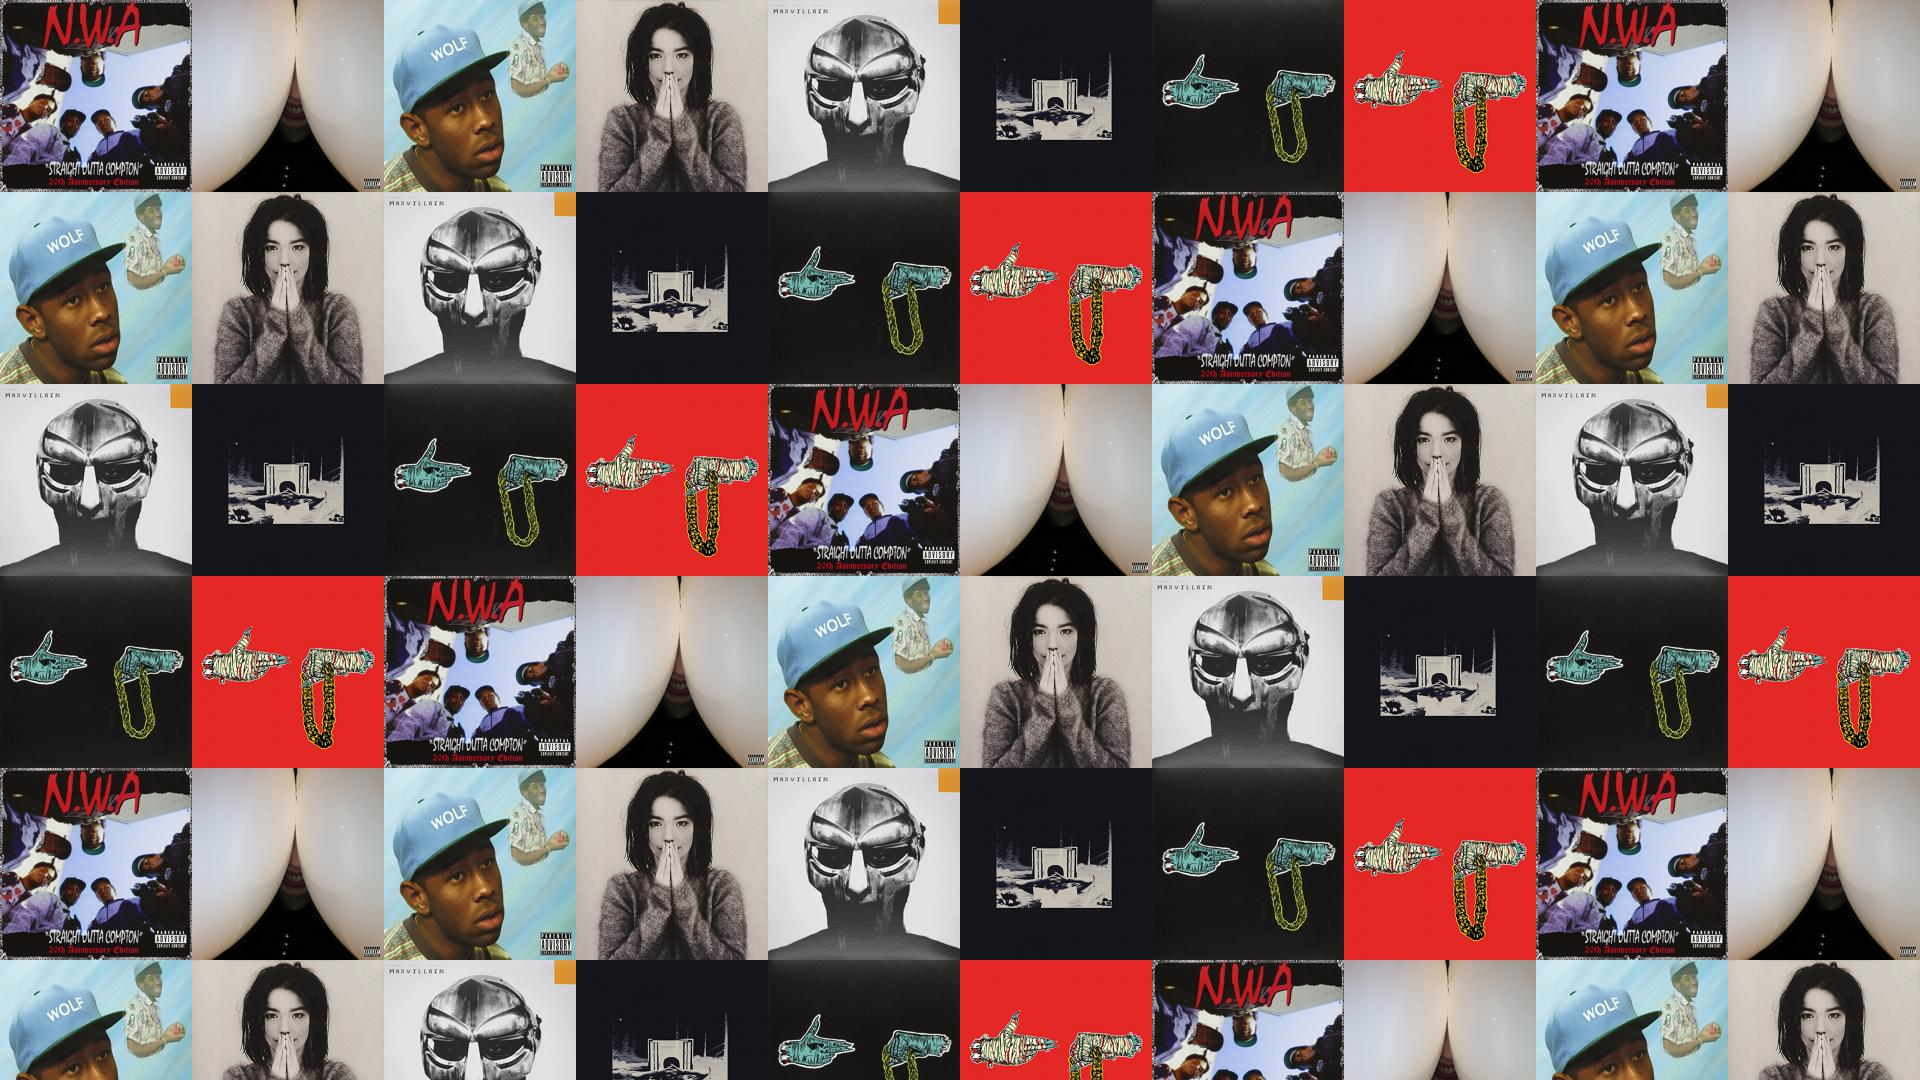 Nwa Straight Outta Compton Death Grips Bottomless Pit Wallpaper